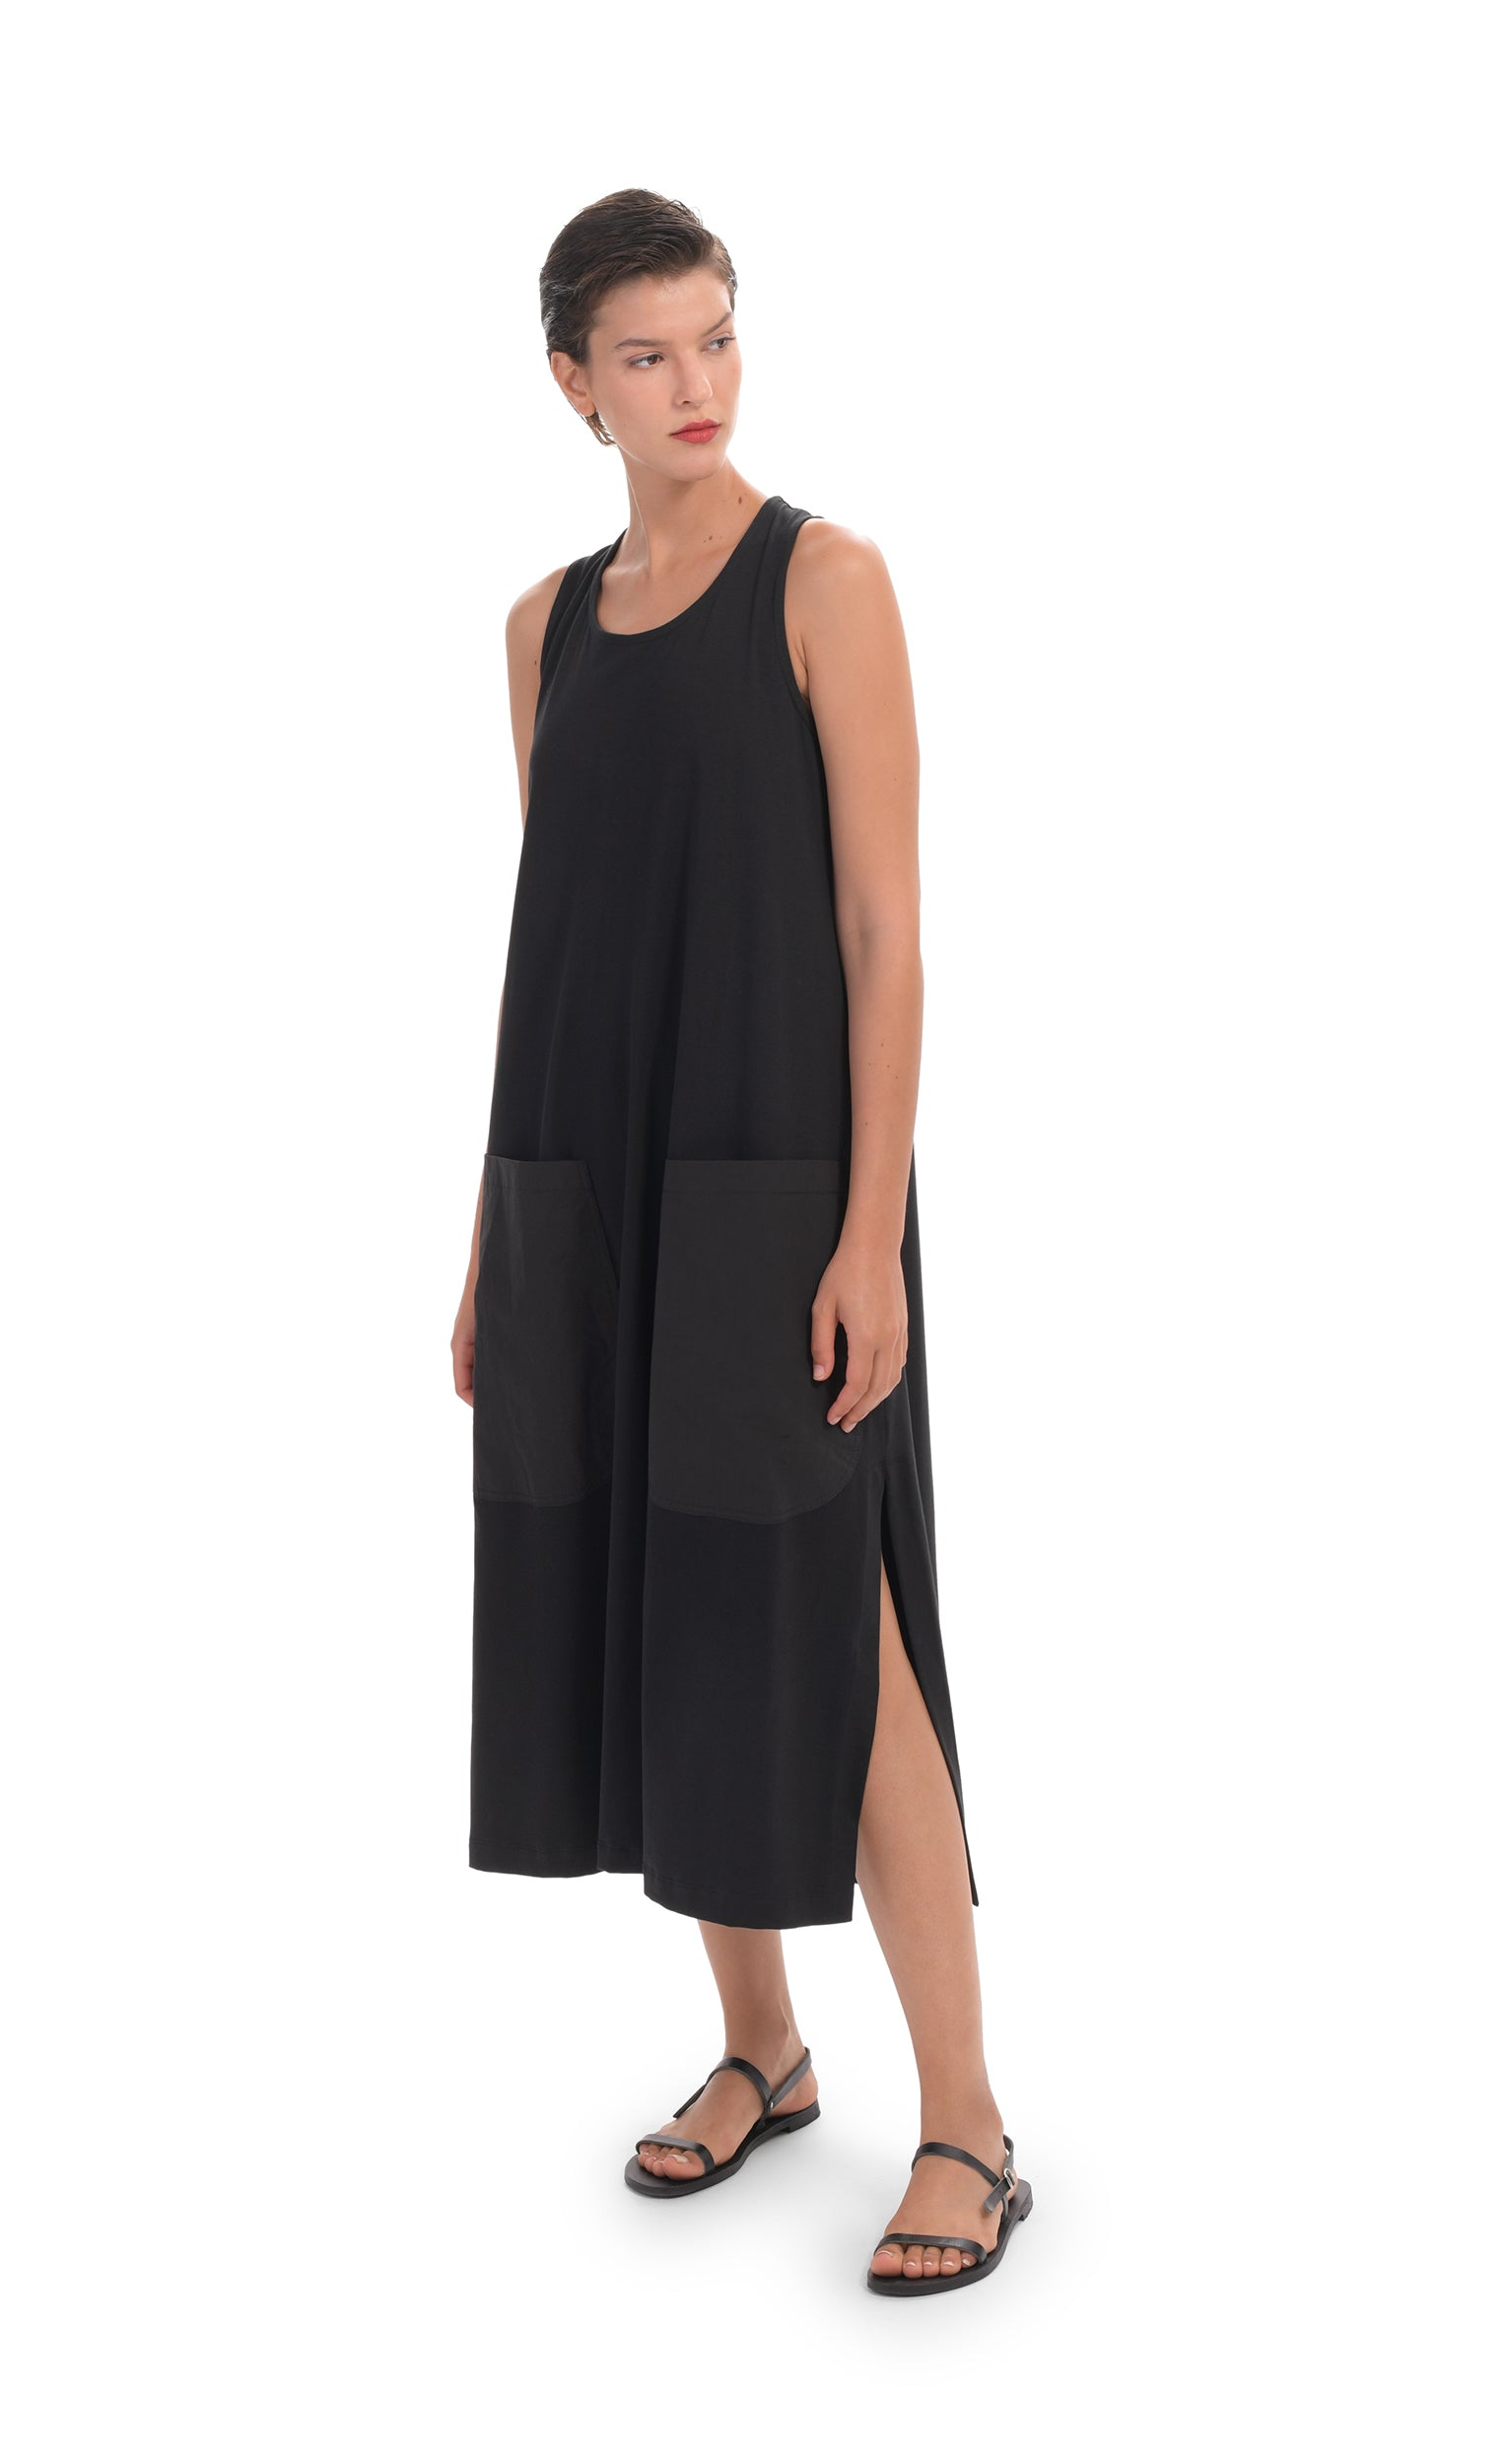 Front full body view of a woman wearing the alembika cotton tank dress. This black dress is sleeveless with two large patch pockets on the front and long side slits. This dress goes down to just below the model's knees.